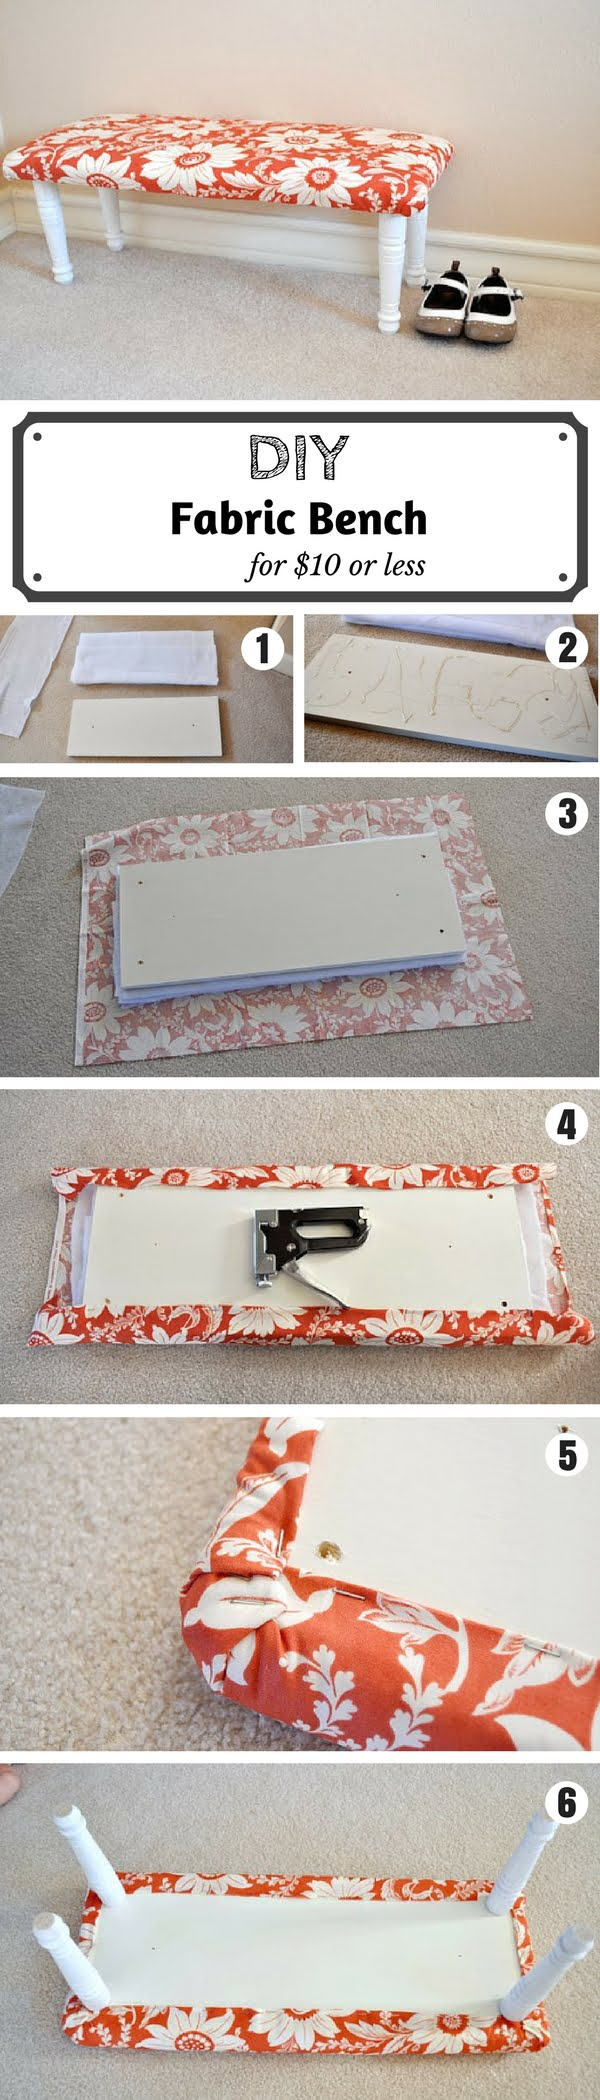 Check out the tutorial on how to make a DIY fabric bench